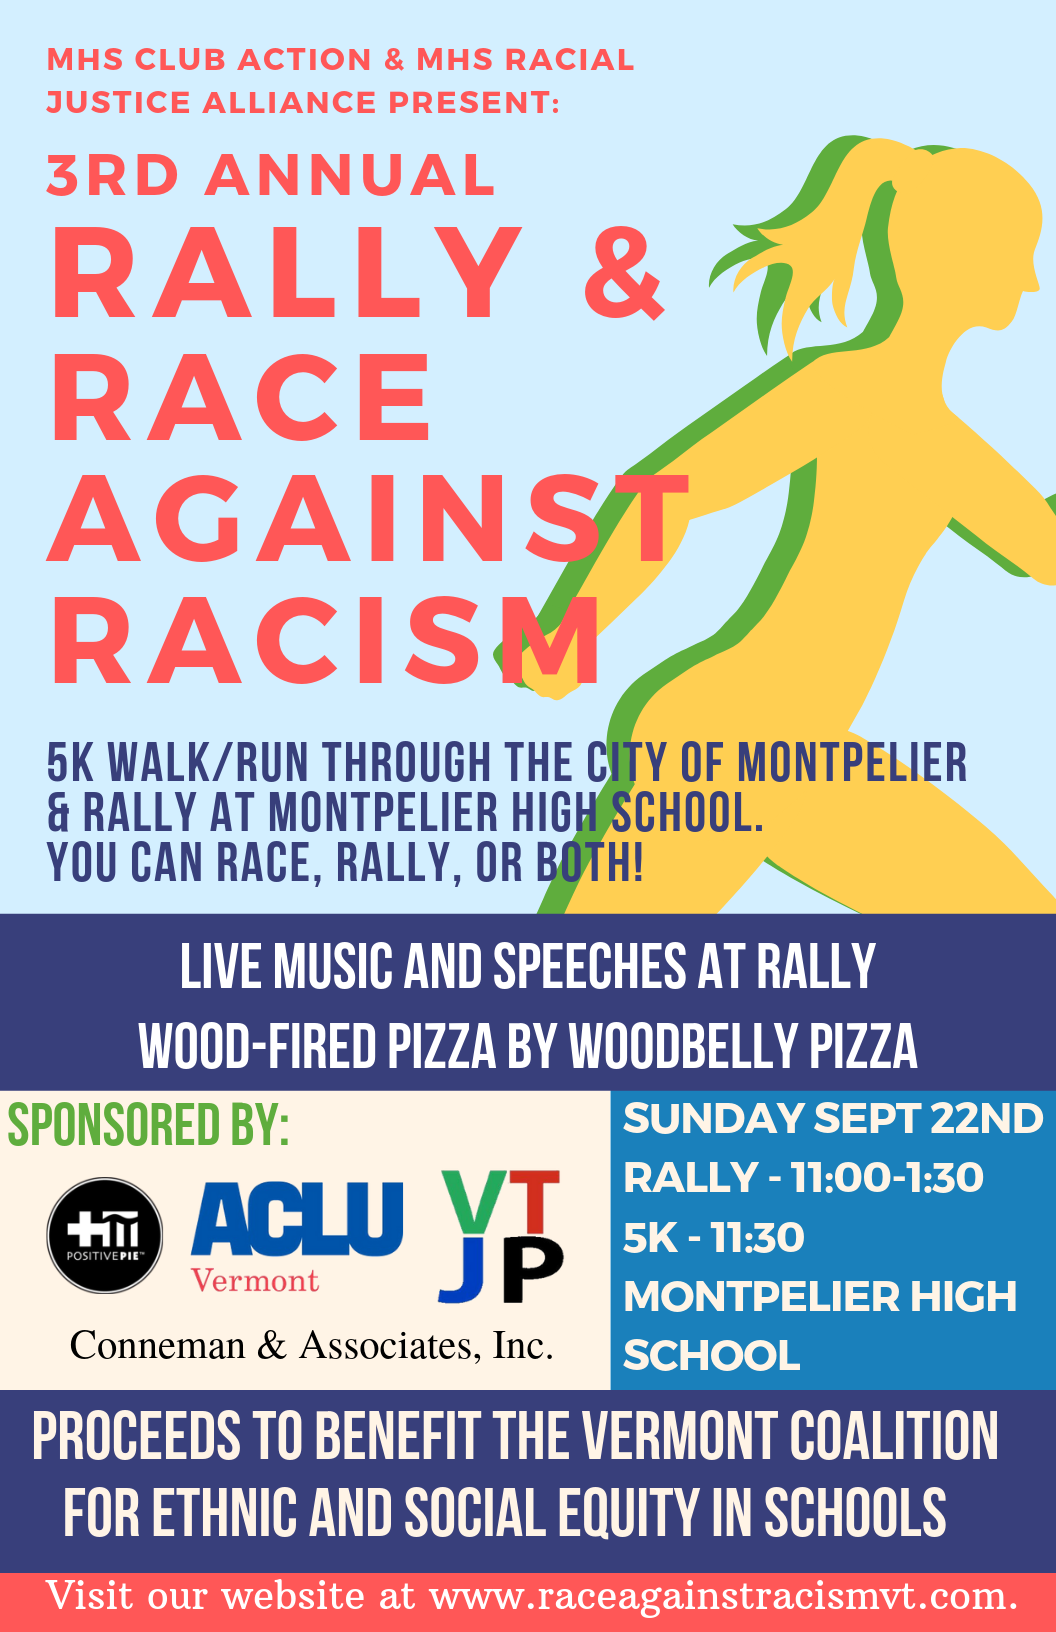 Copy of RallY & Race against racism-4.png